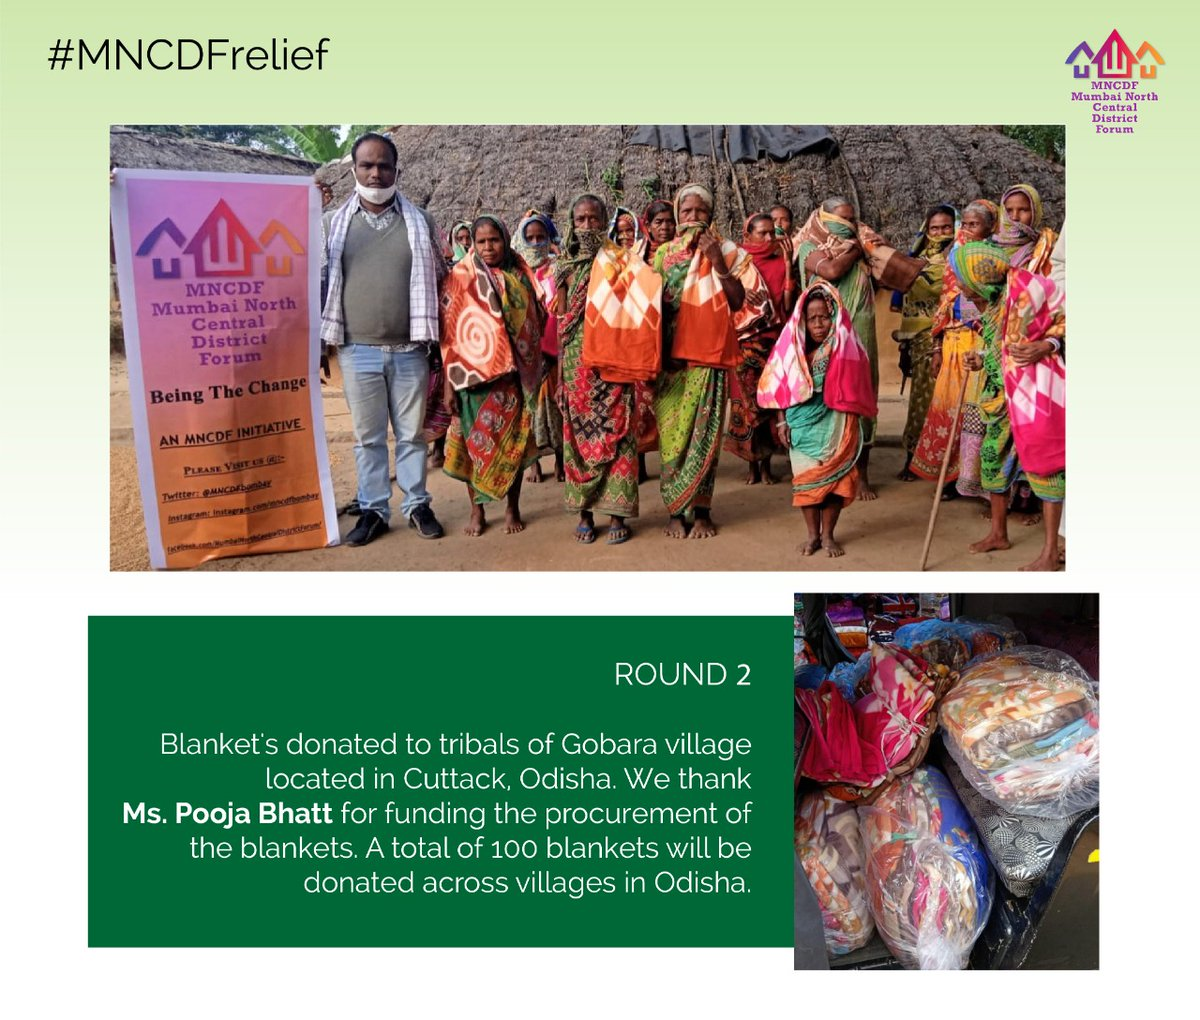 On account of Diwali, since the winters have set in Odisha, we initiated Round 2 of distribution of blankets through social worker @BastiaManas for Tribals/Adivasi's in multiple villages in Cuttack. We thank @PoojaB1972 empowering us to procure the blankets. #MNCDFrelief